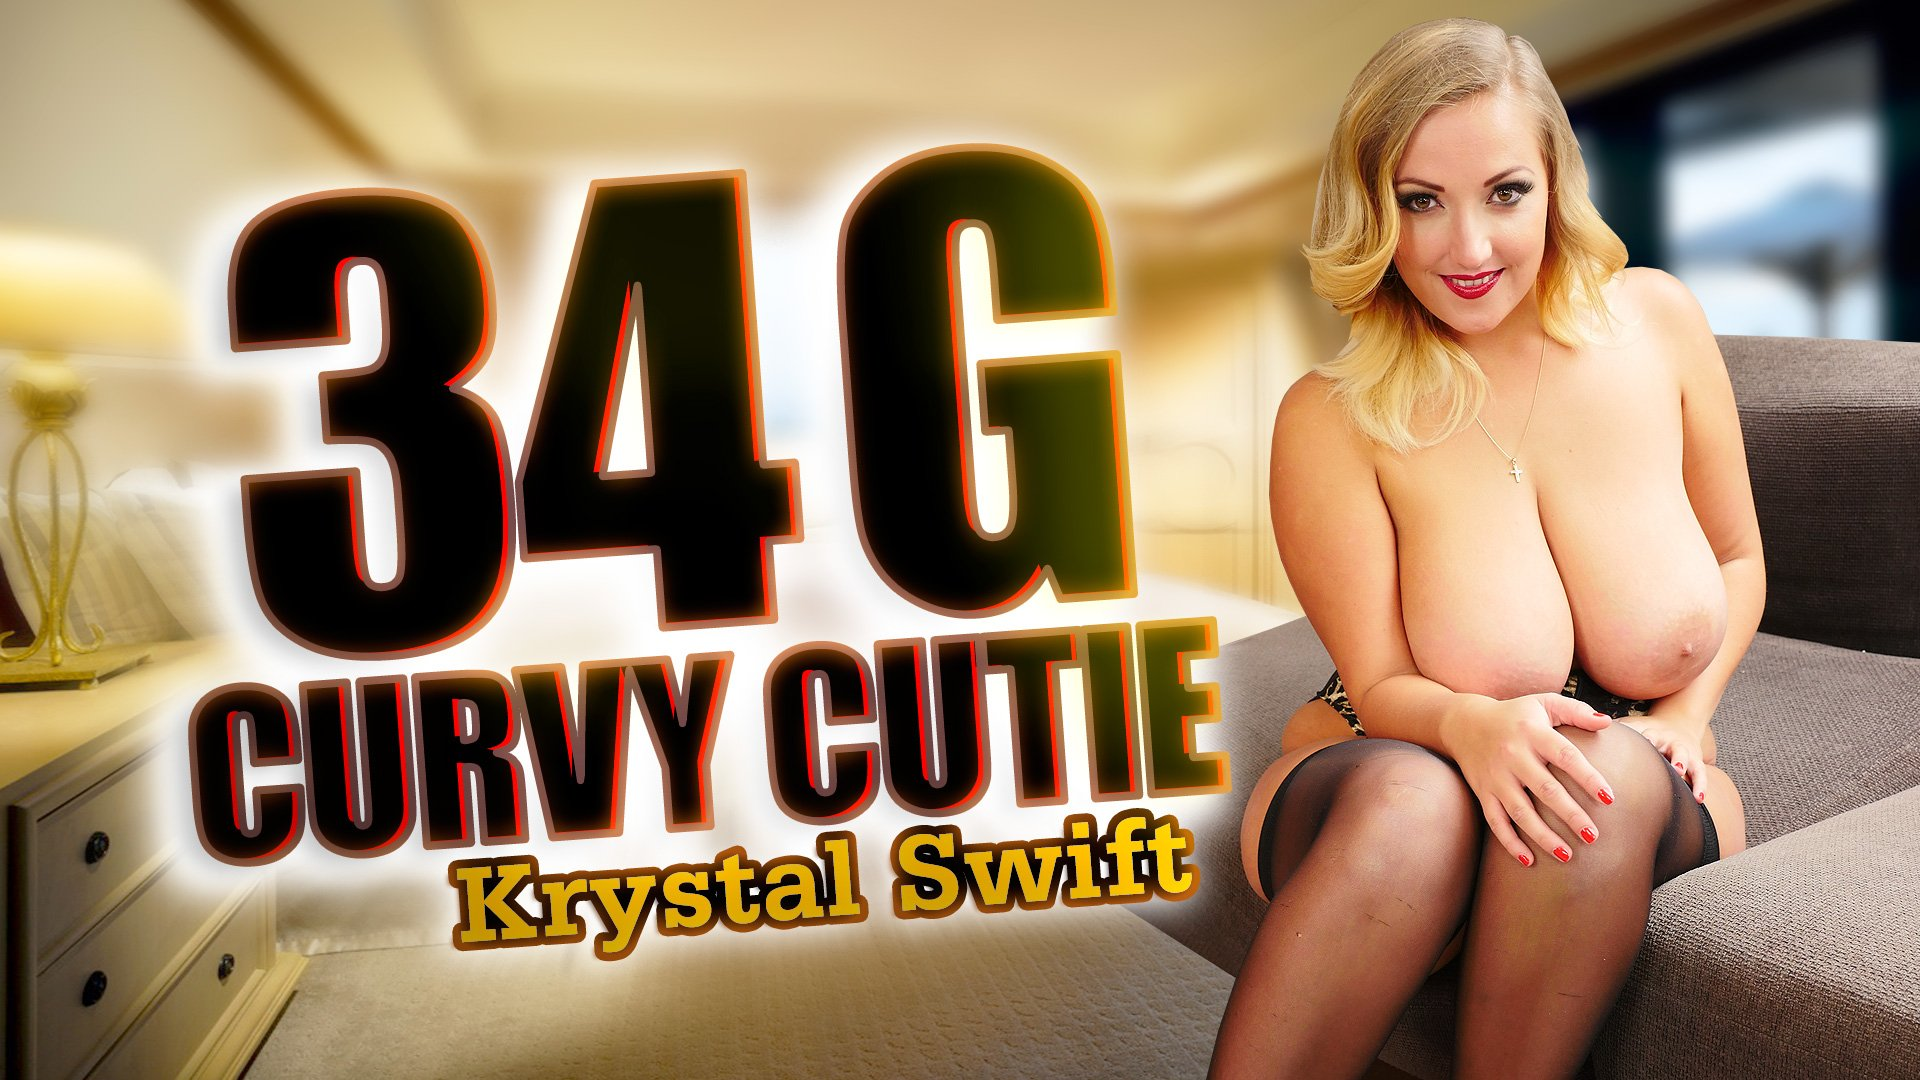 VR Porn Video - StockingsVR - 34 G Curvy Cutie with Krystal Swift